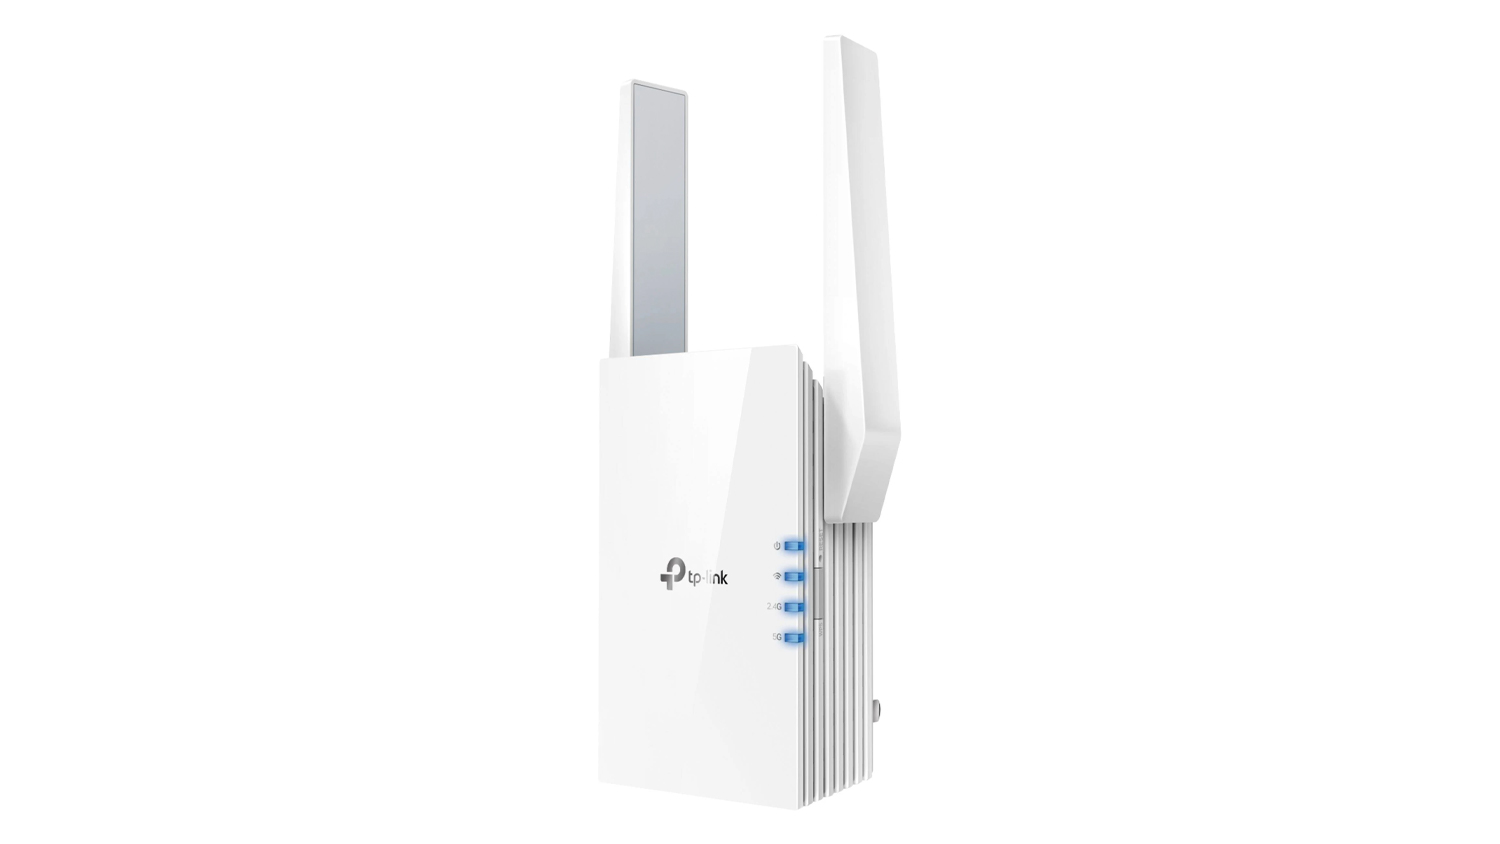 TP-Link RE605X WiFi 6 Range Extender at an angle on a white background